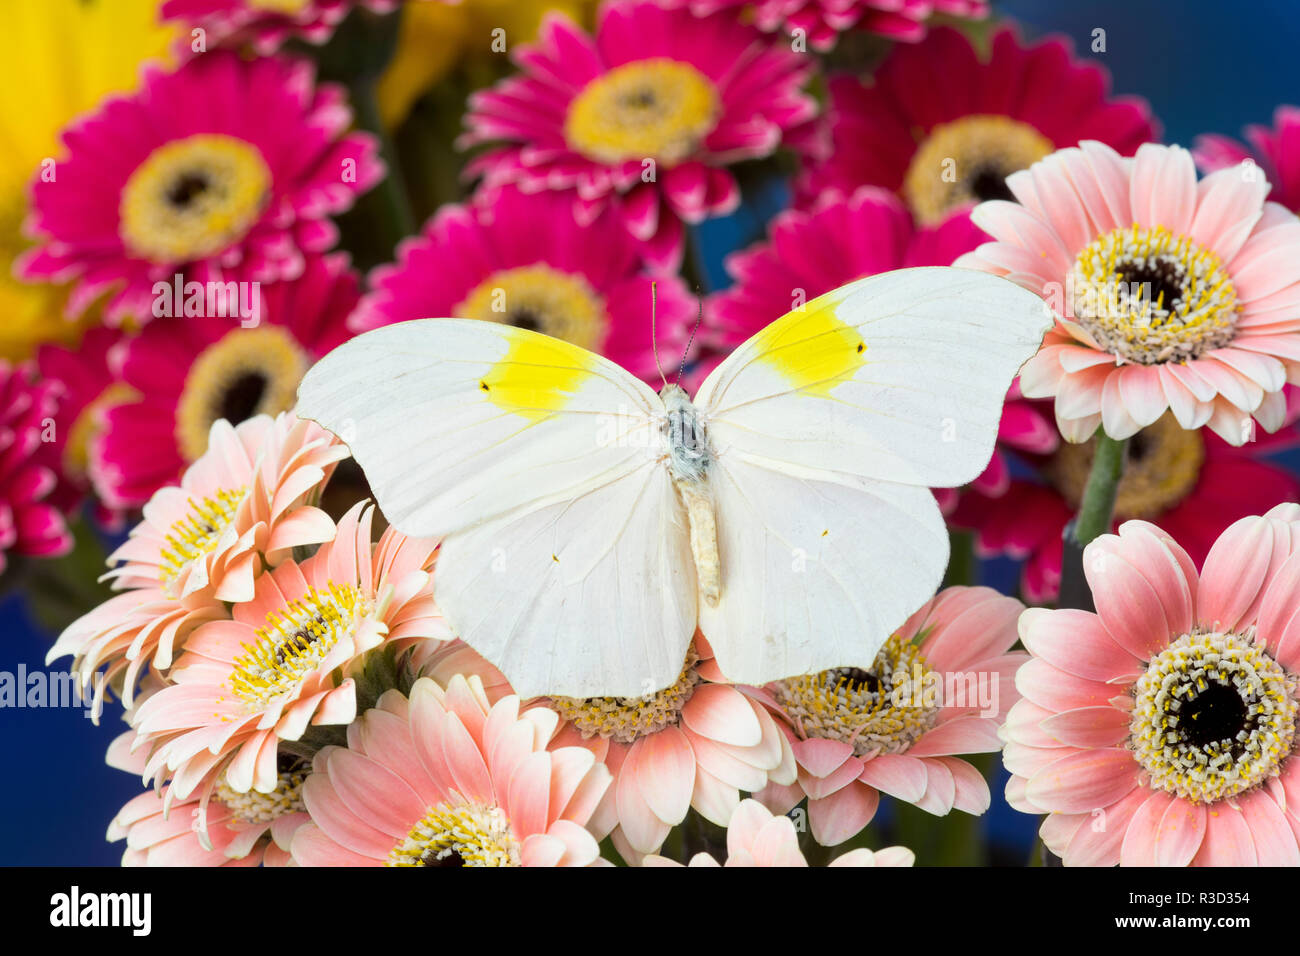 White angled-sulphur butterfly, Anteos clorinde on Gerber Daisies - Stock Image